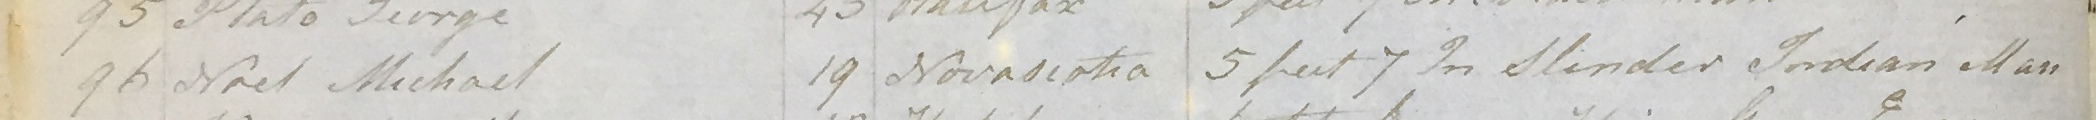 "Close up image of a ledger listing name, age, birth place, height, and the description ""slender indian man"""